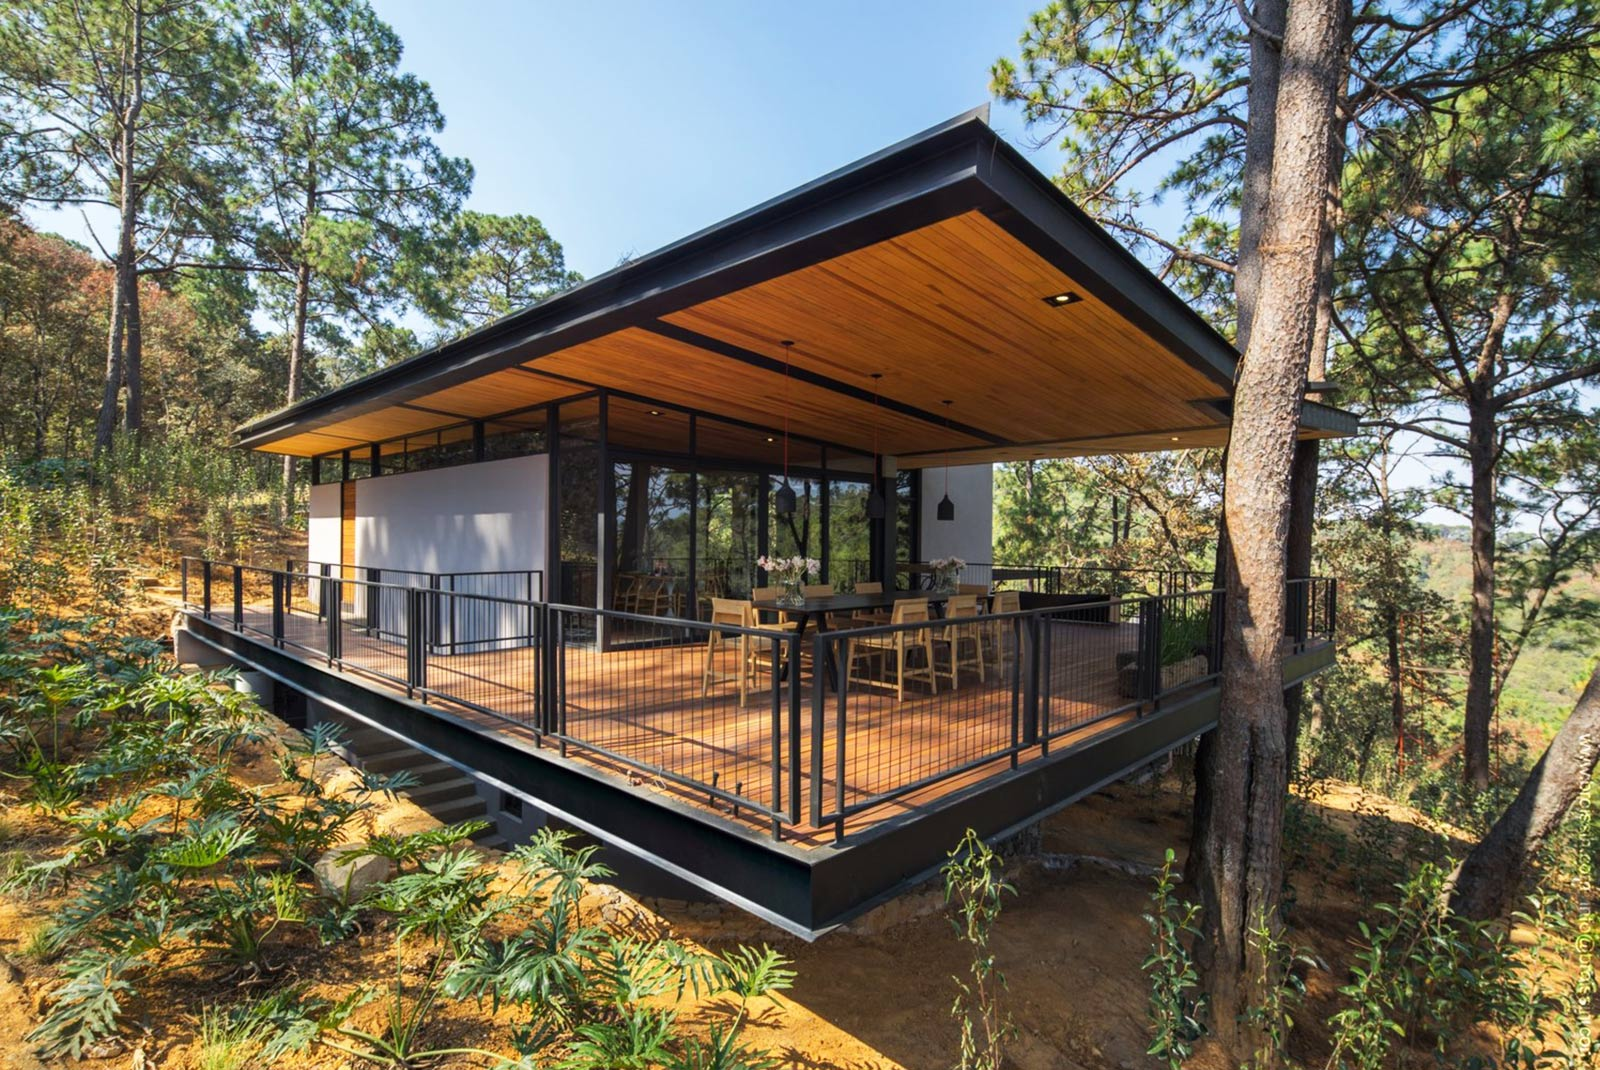 Insulating Green Roof Disguises A Stunning Woodland Home In Mexico